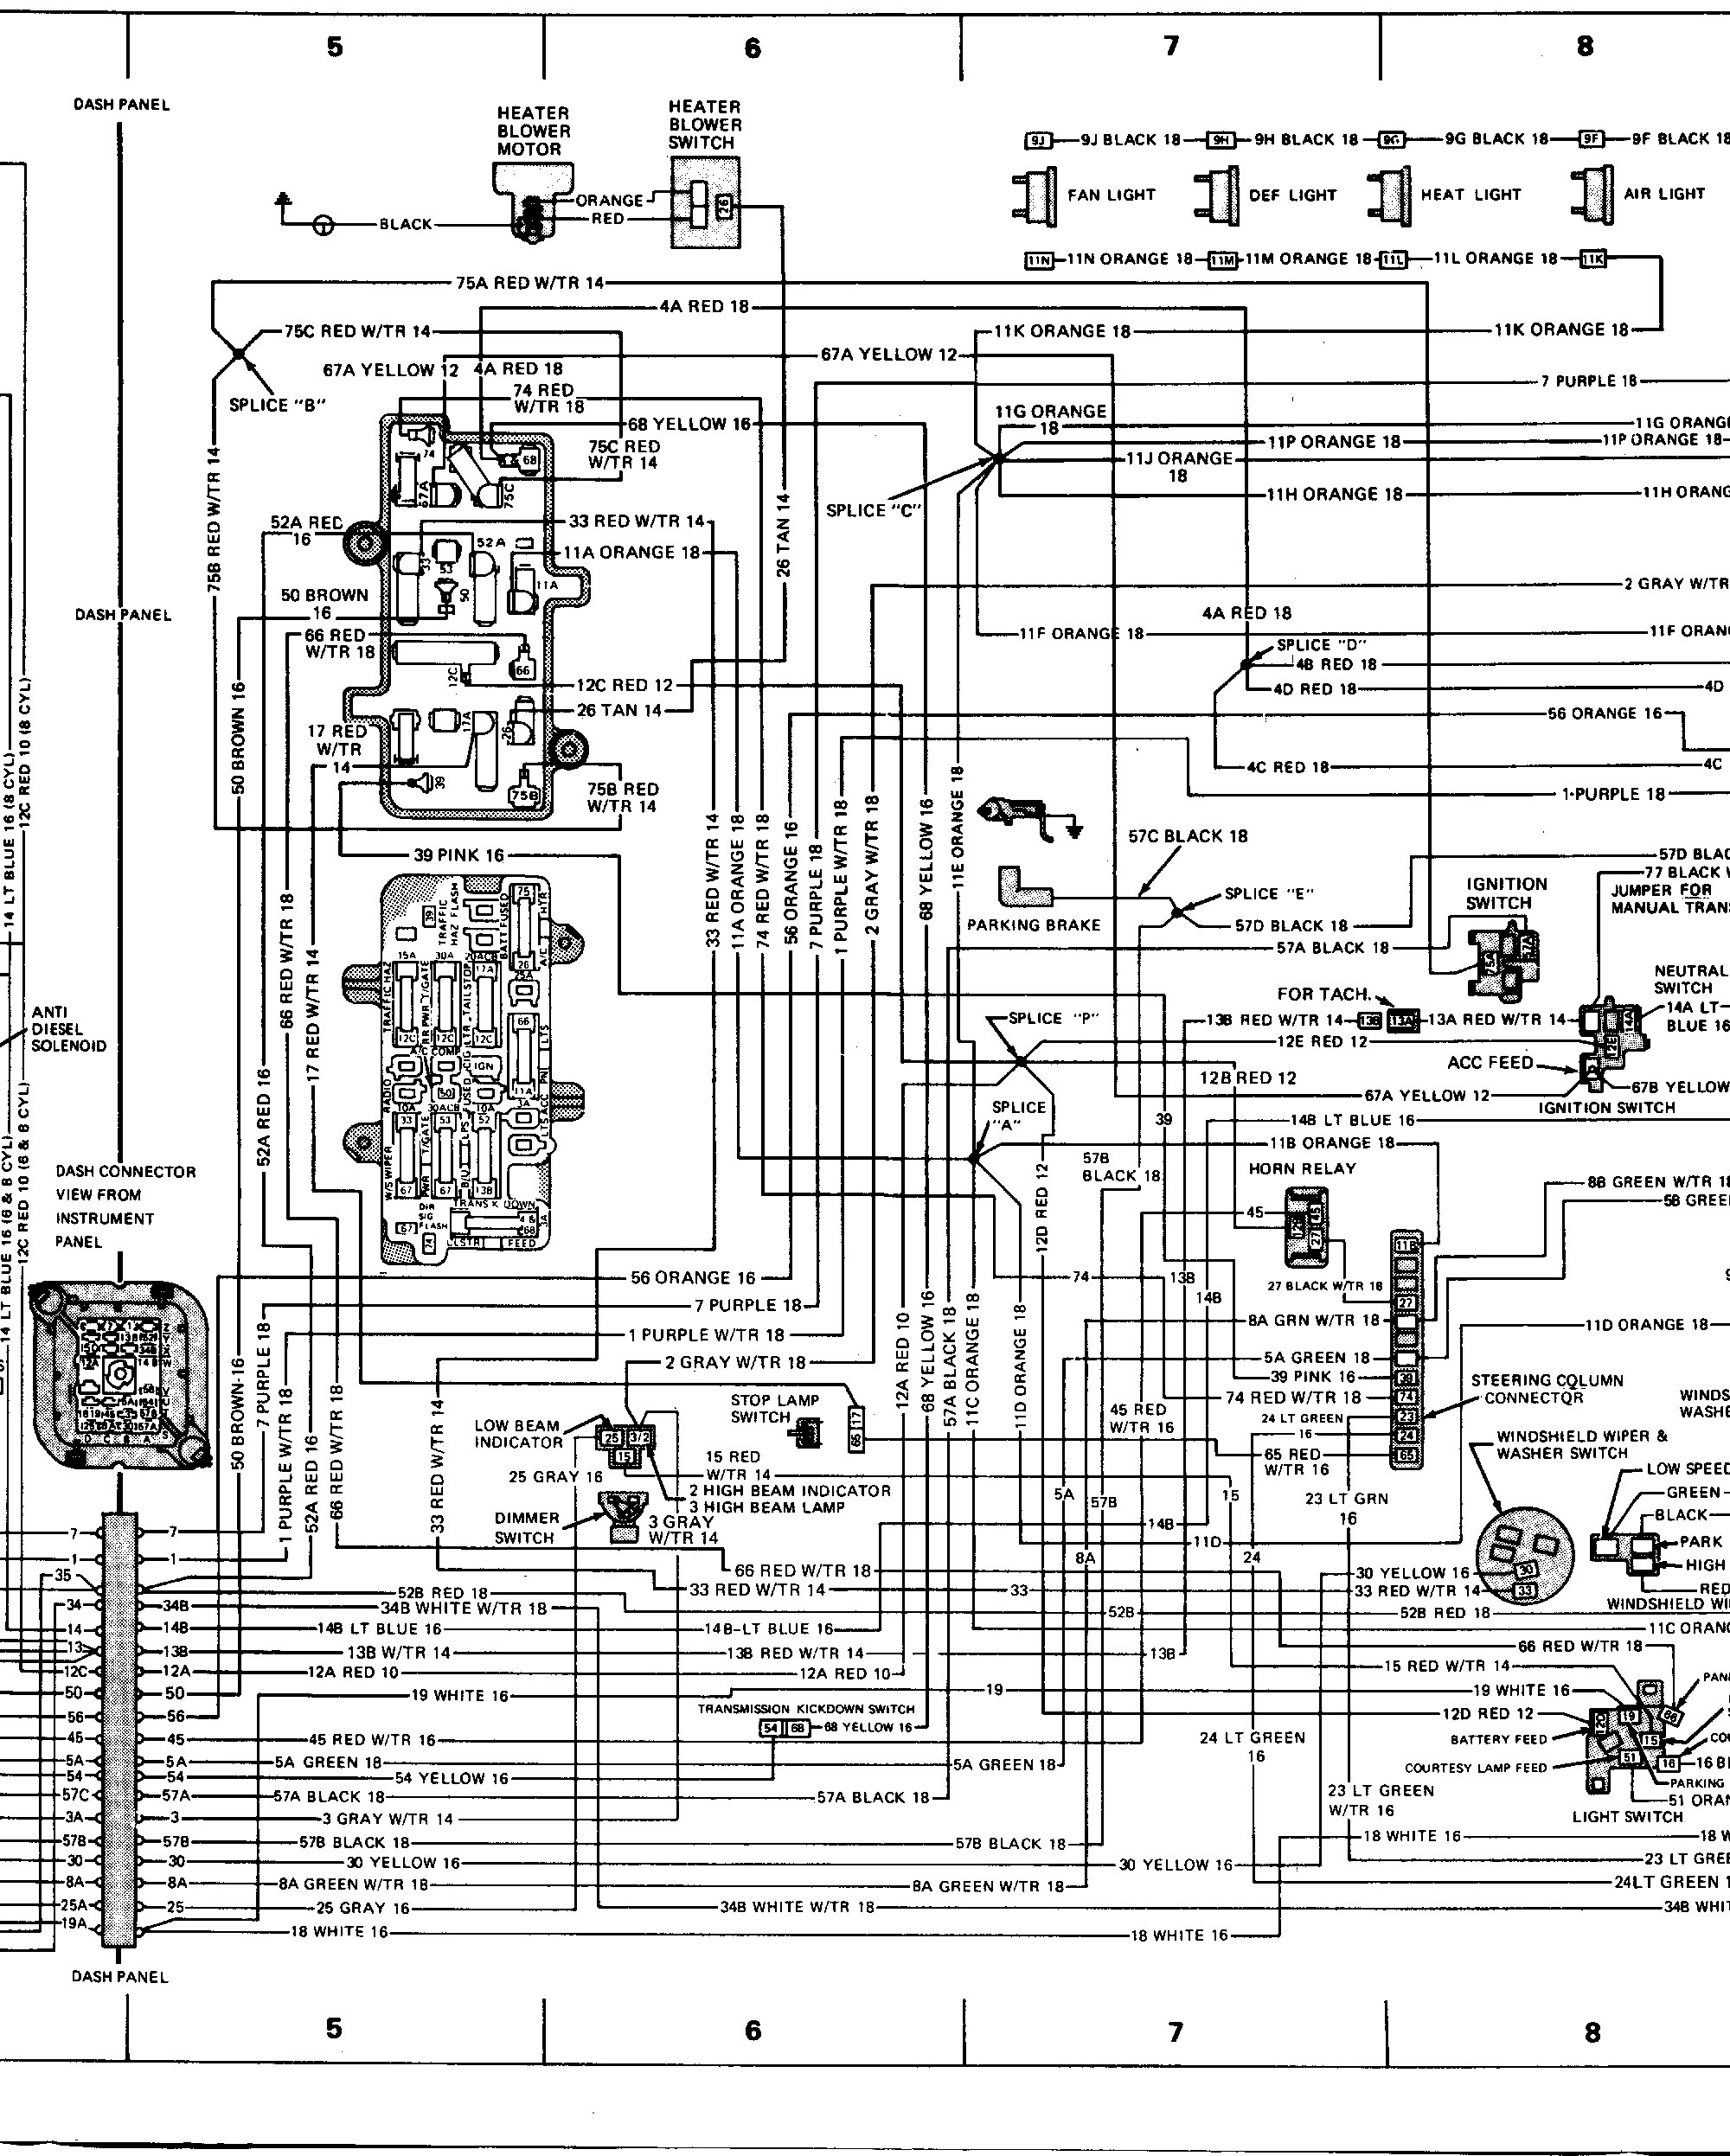 Diagram 1982 Jeep Cj7 Ignition Wiring Diagram Full Version Hd Quality Wiring Diagram Diagramsolden Unbroken Ilfilm It